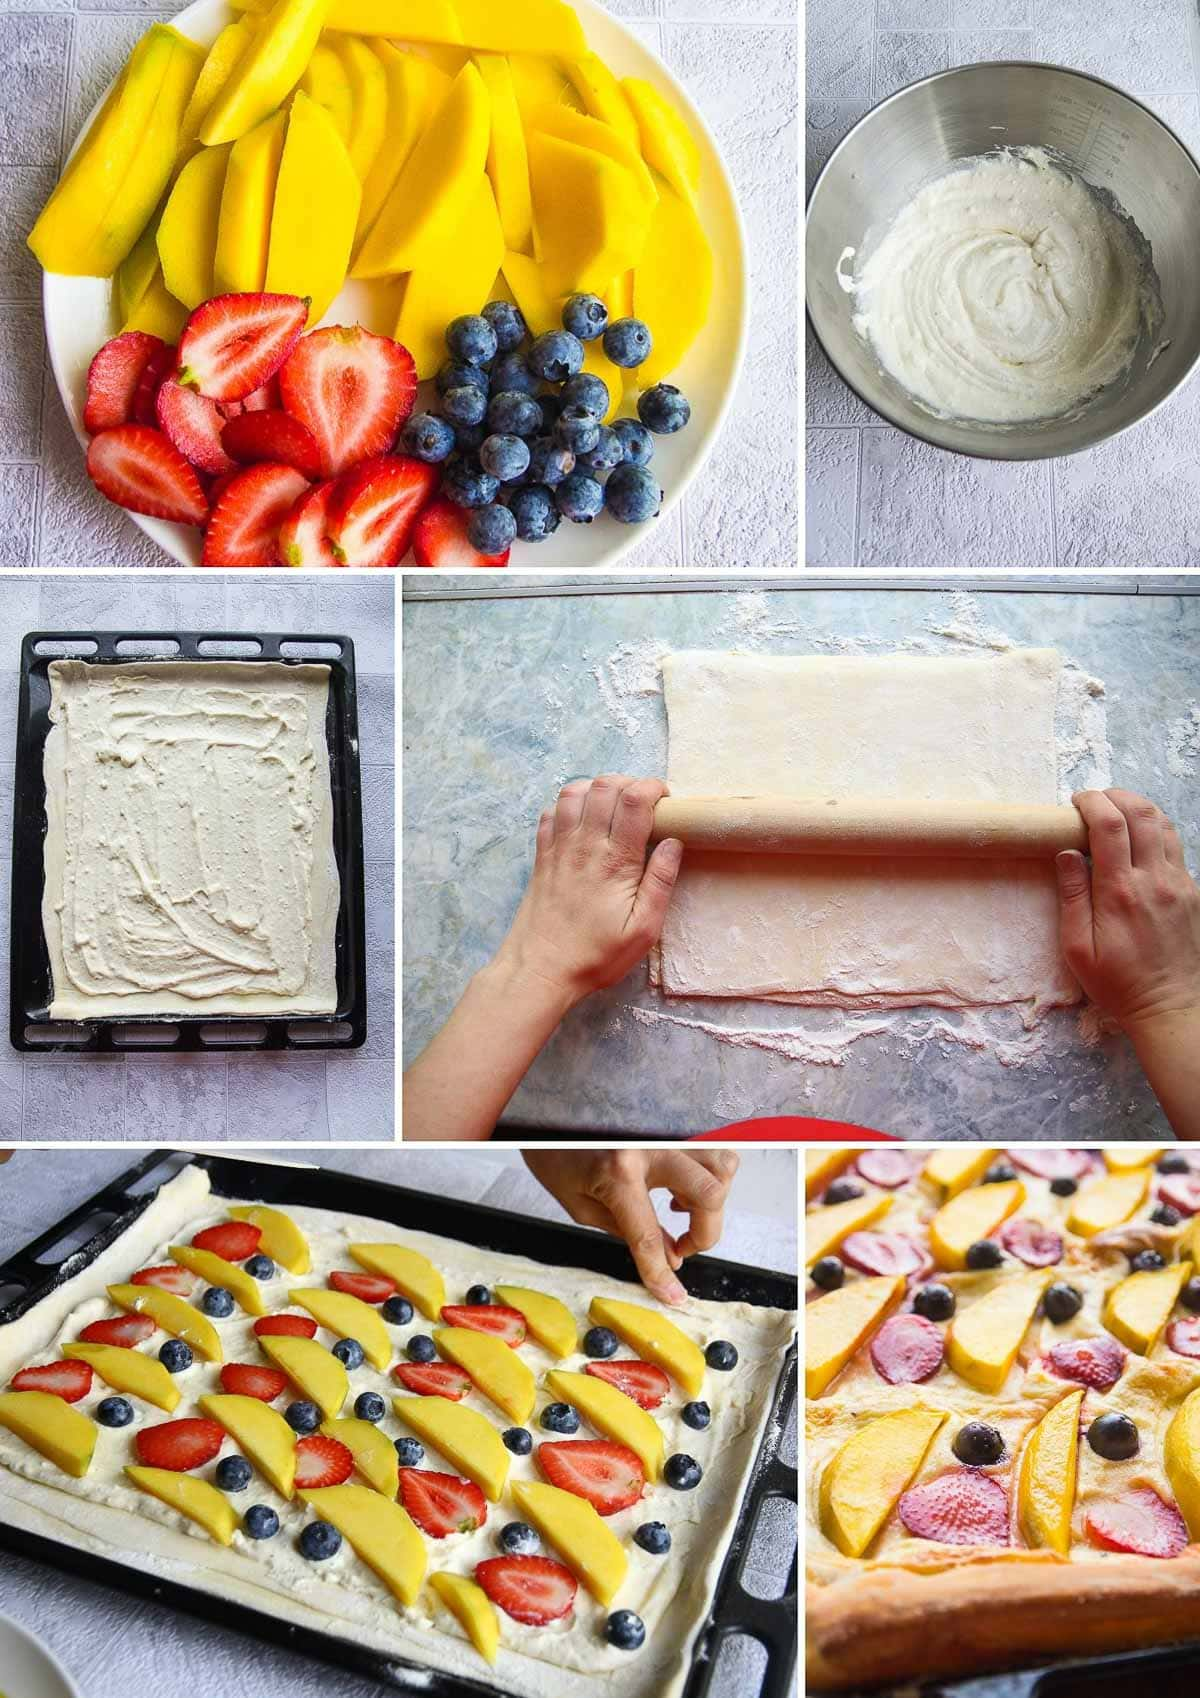 A collage of the recipe steps to make a vegan fruit tart.